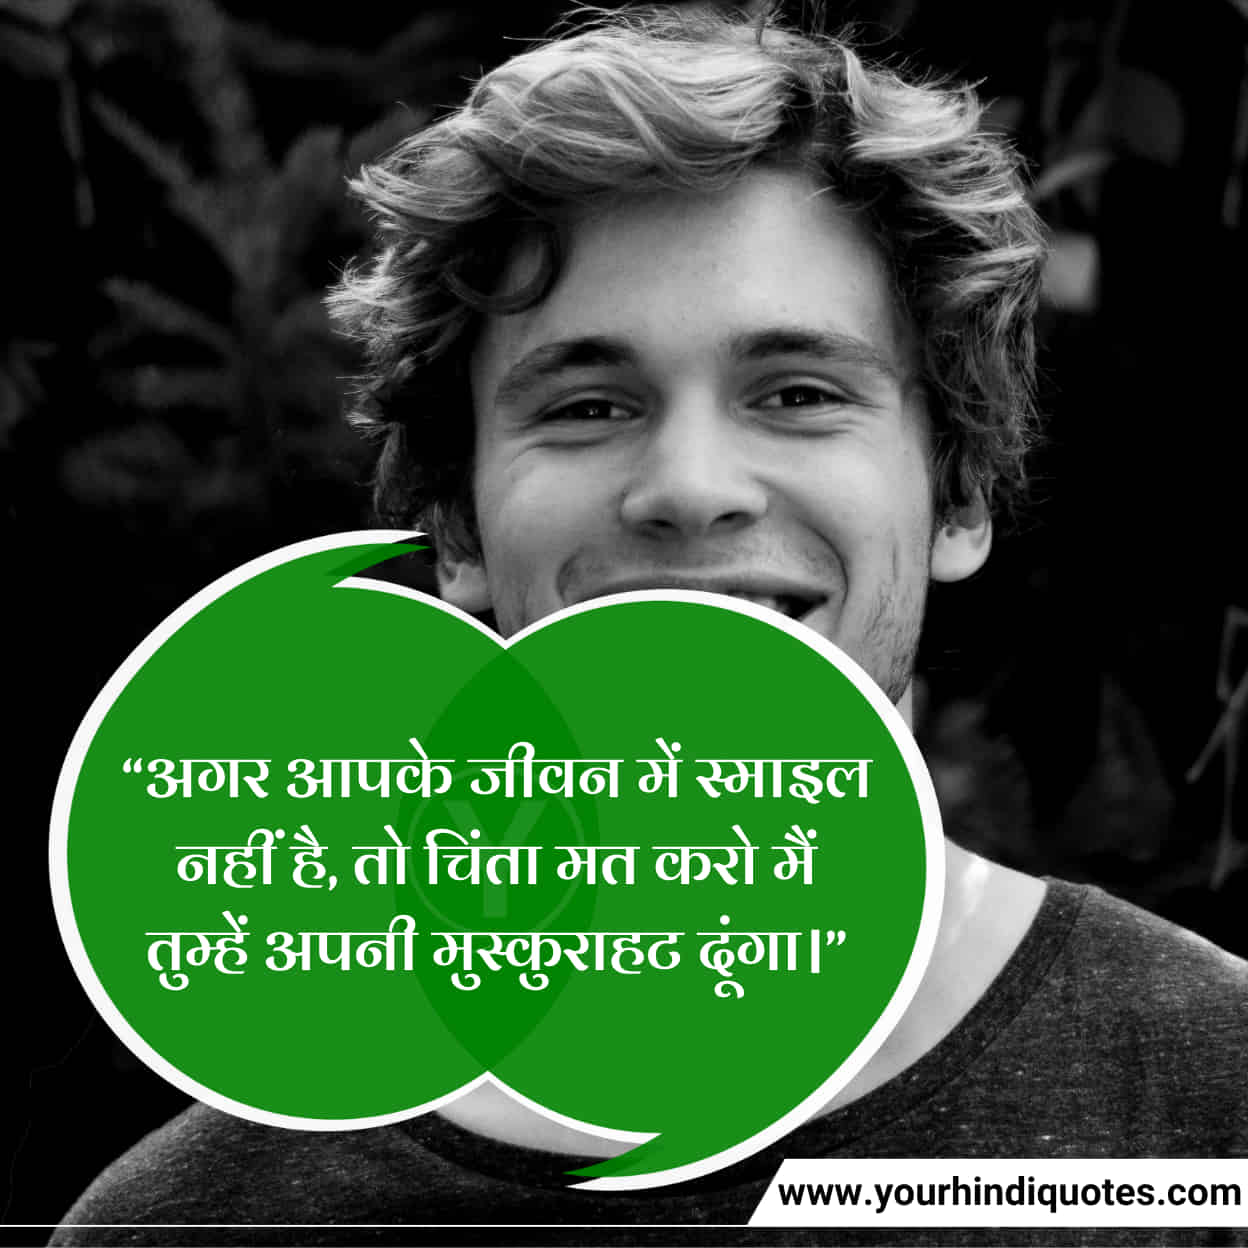 Best Hindi Smile Quotes